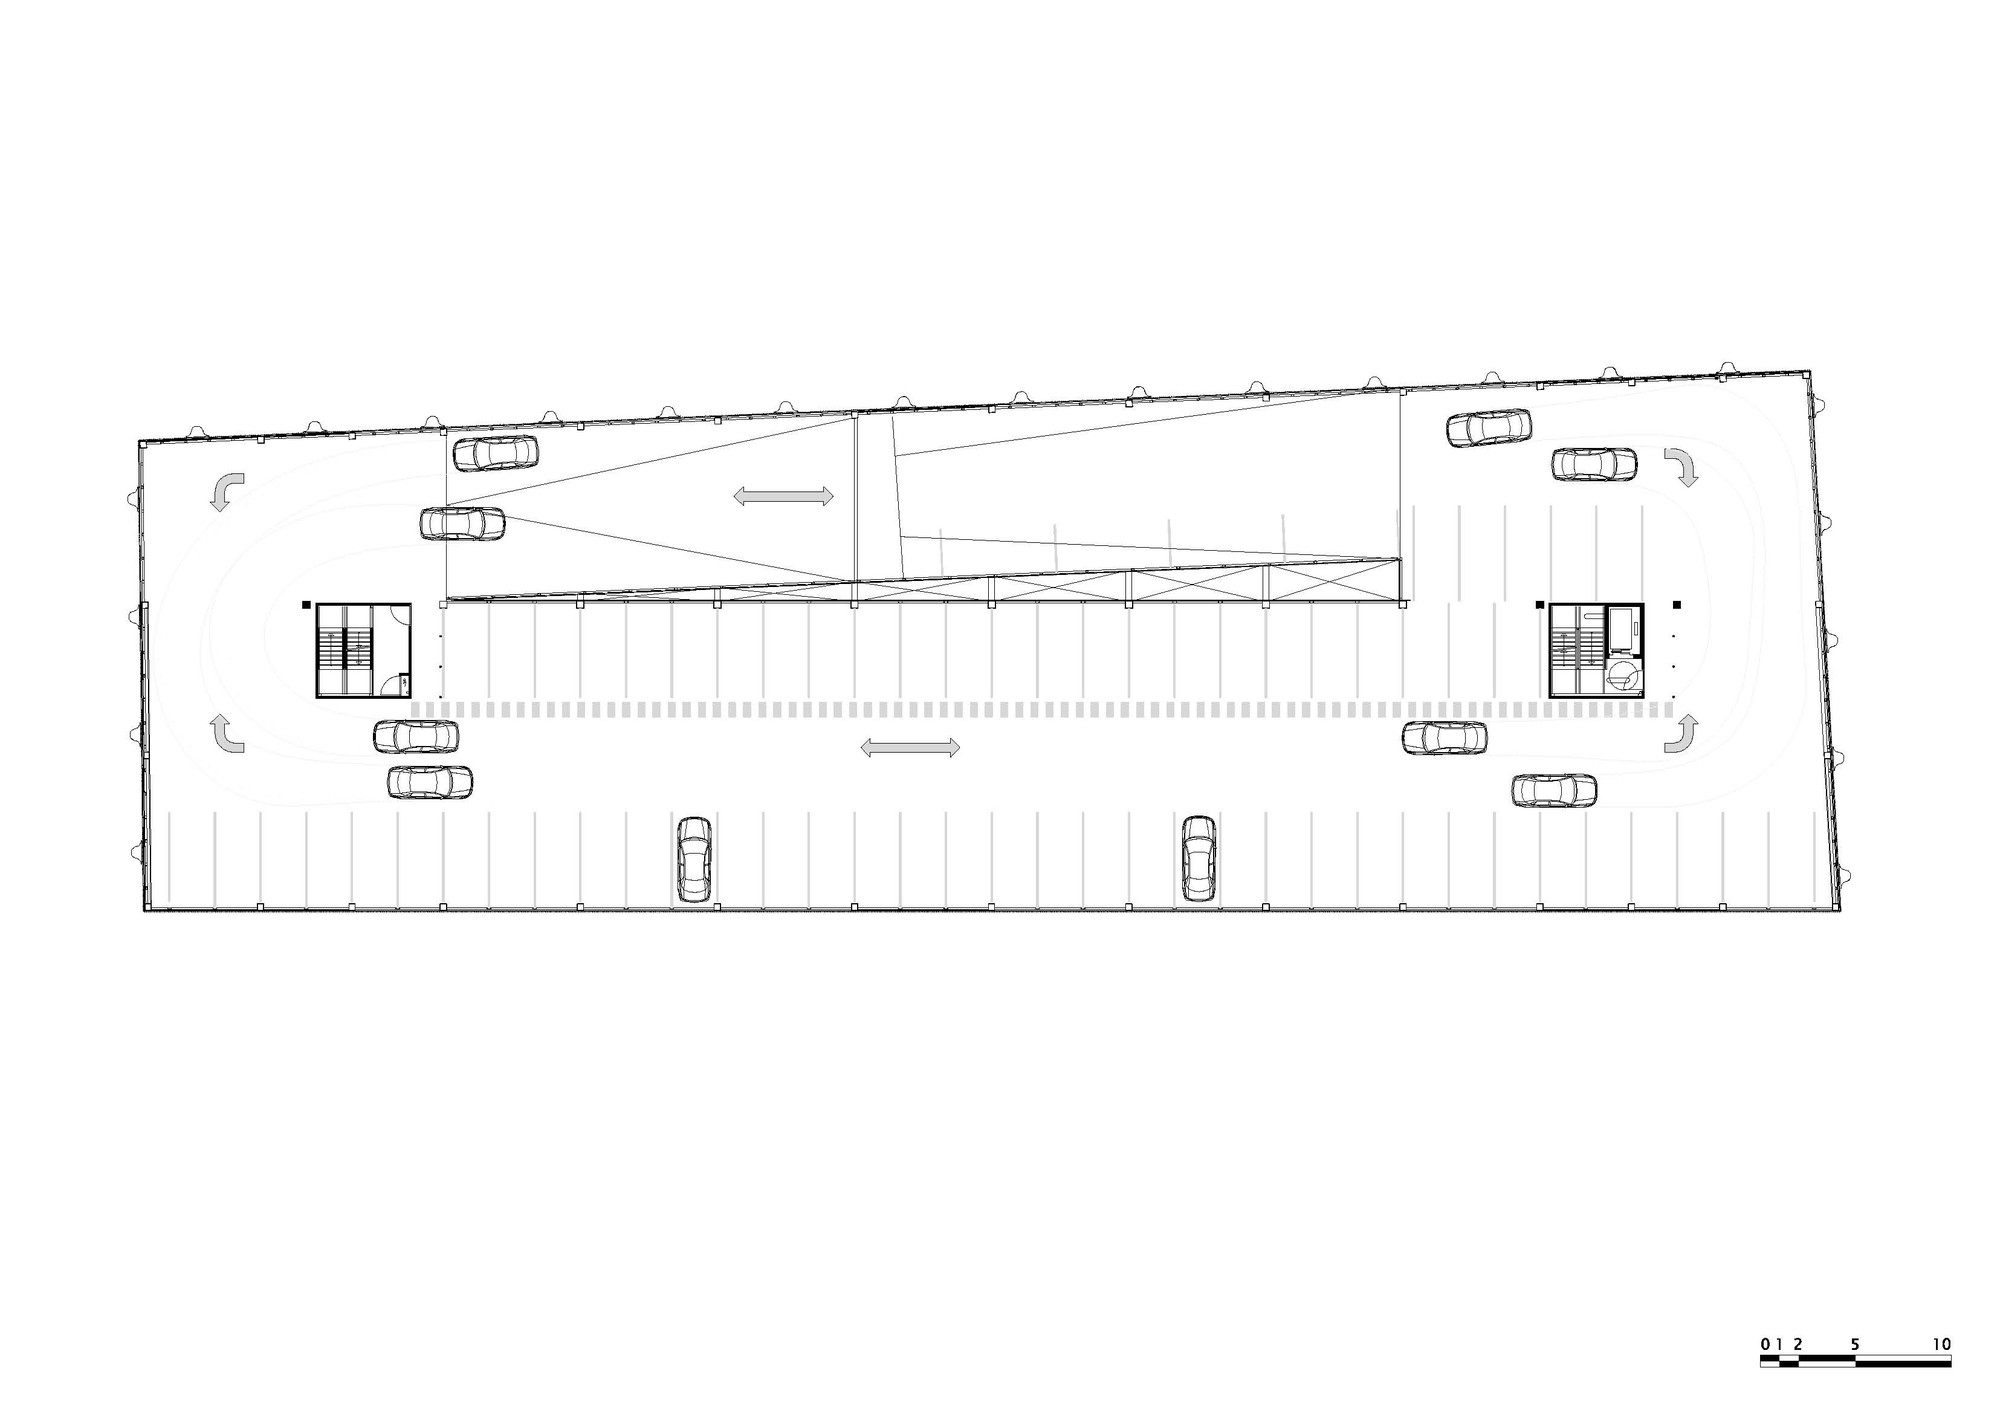 Parking Garage Entrance Plan